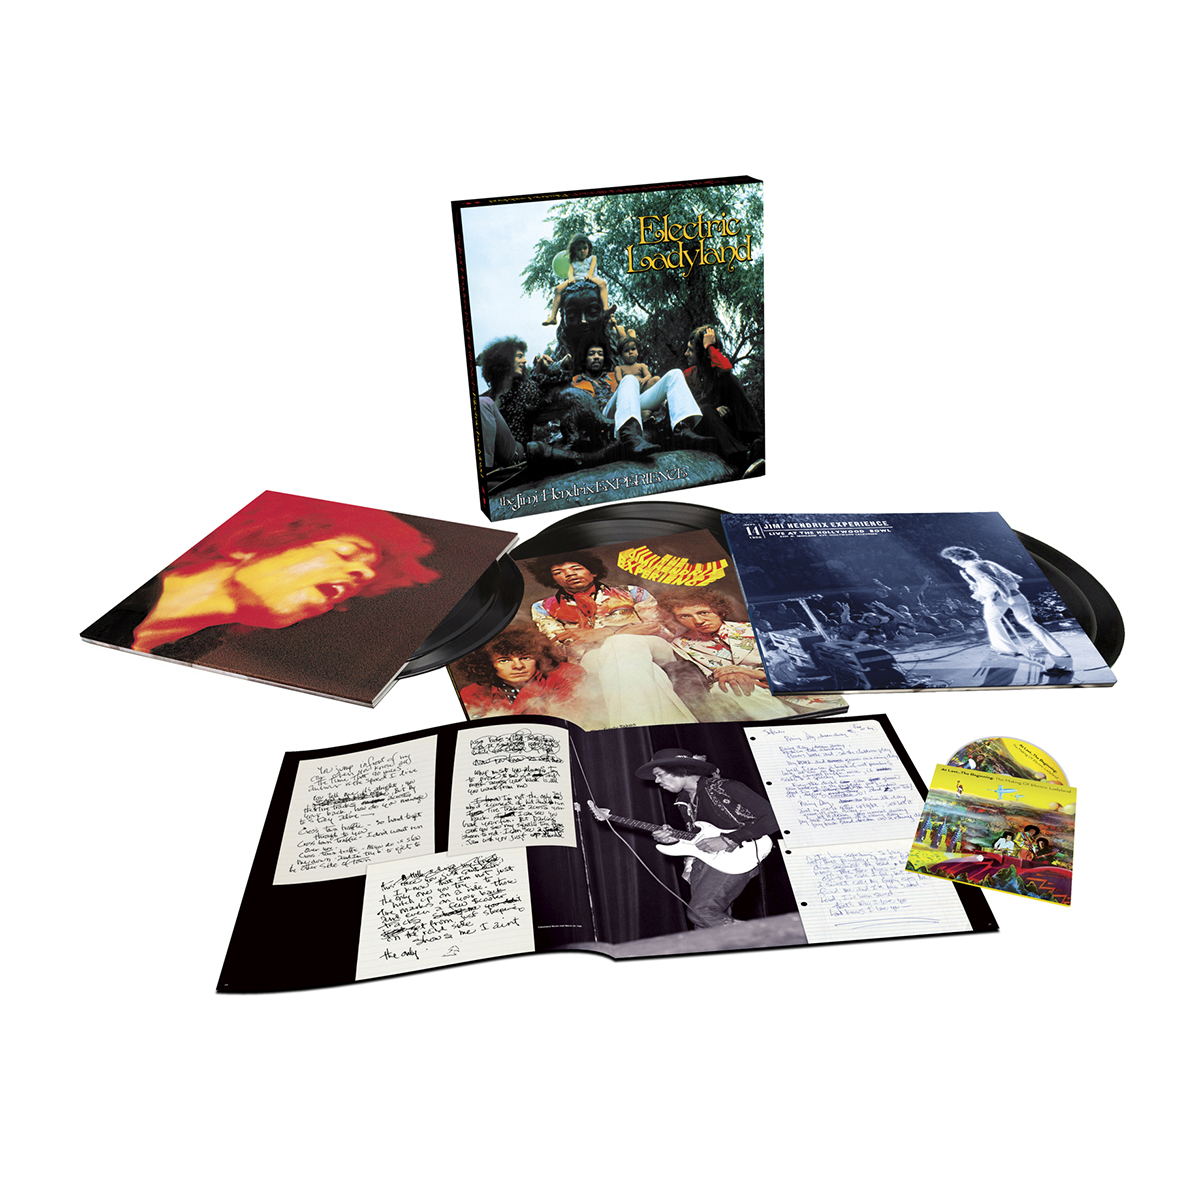 Jimi Hendrix Experience: Electric Ladyland – 50th Anniversary Deluxe Edition LP Box Set